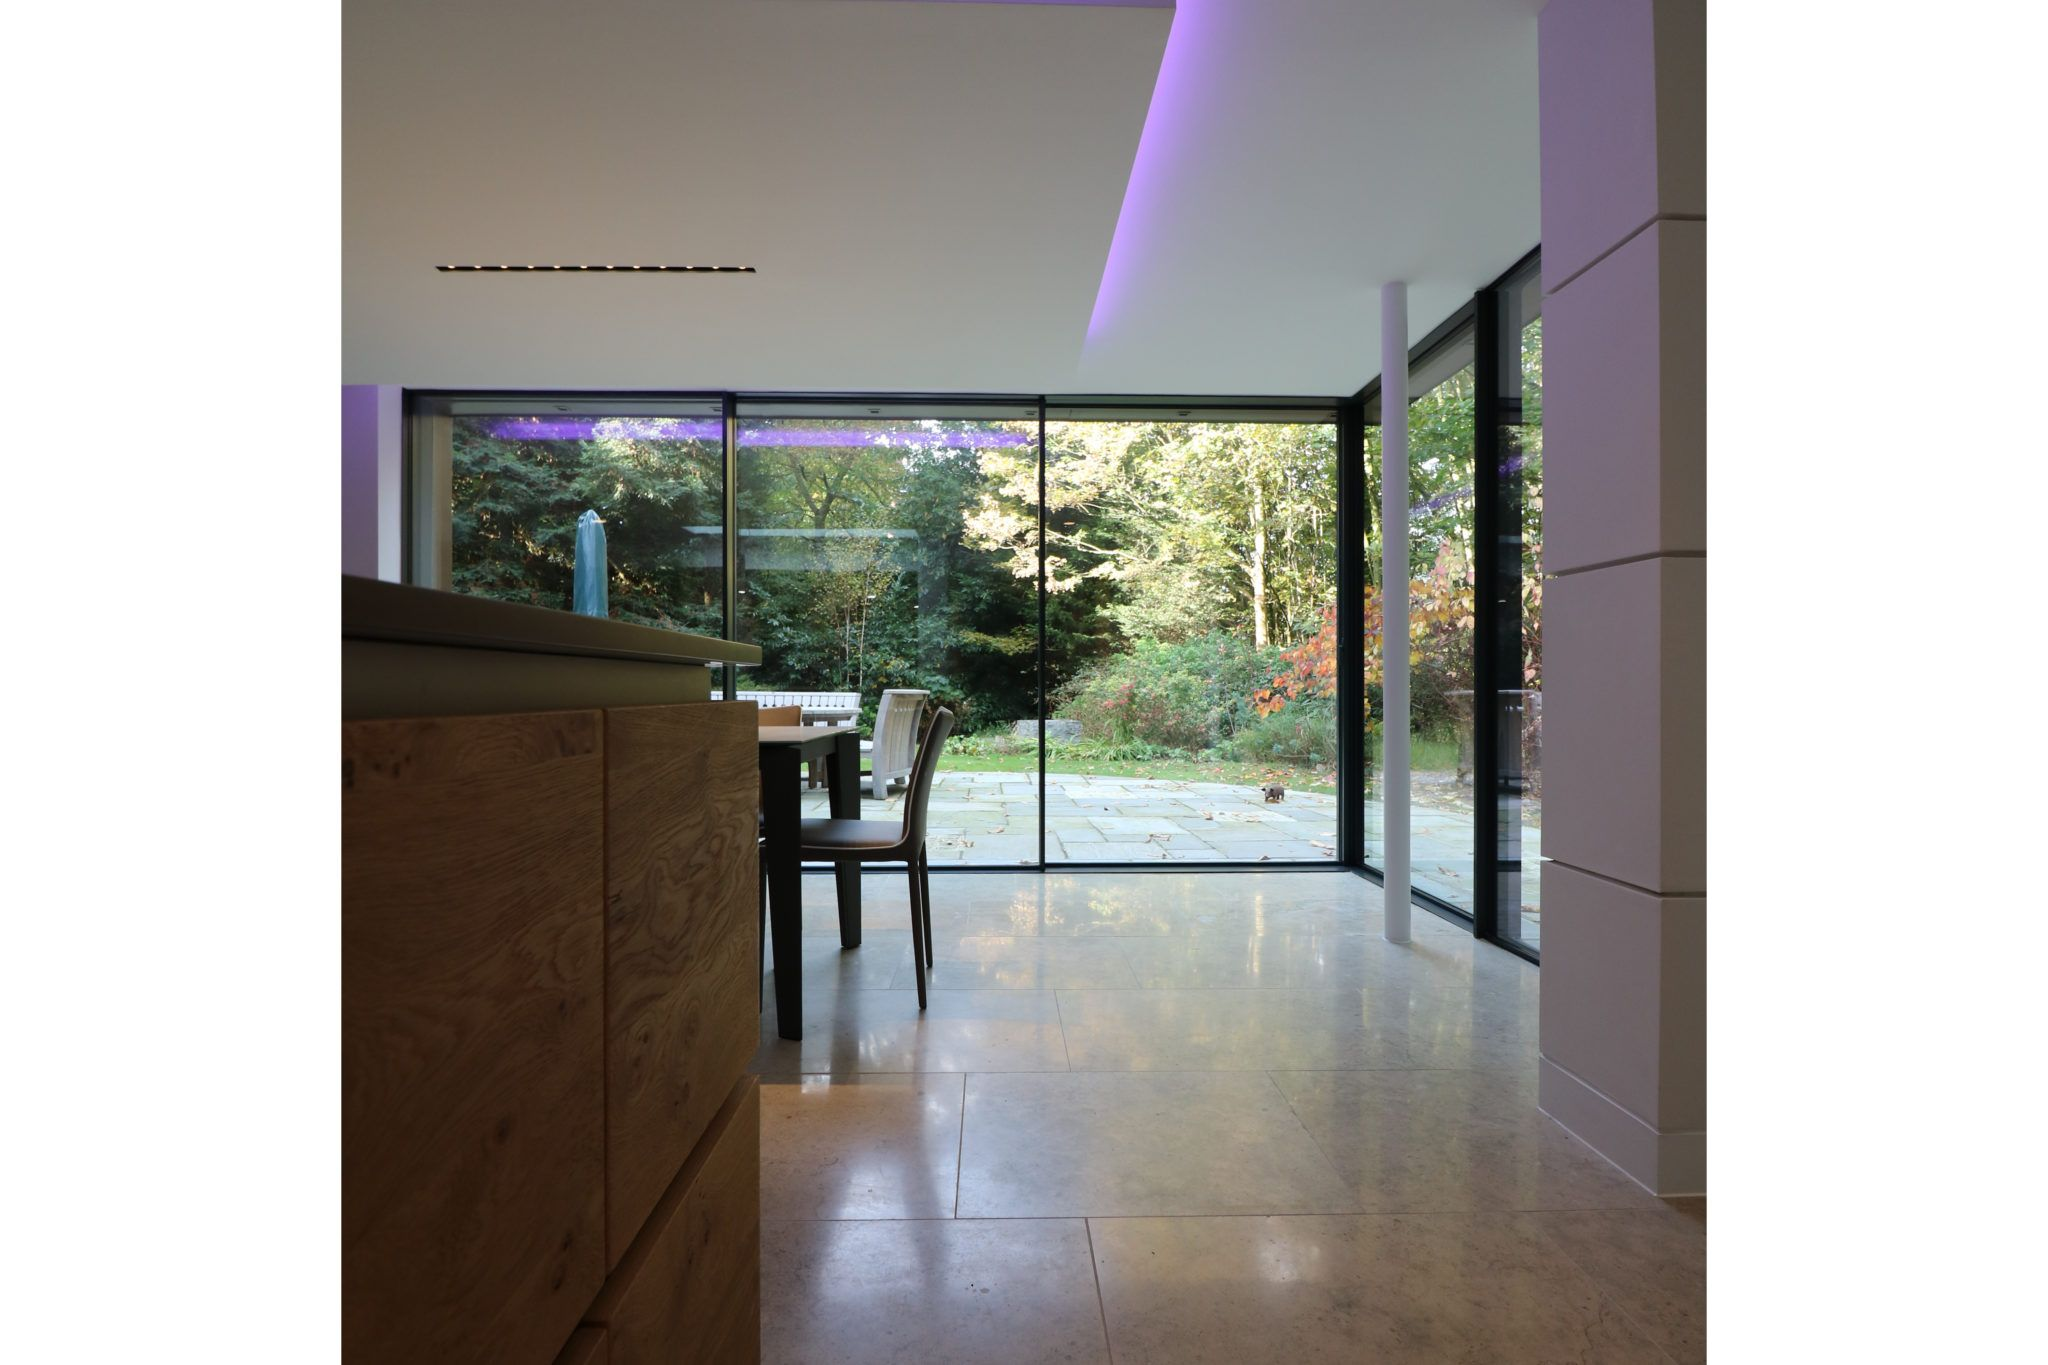 These Minimal Windows Sliding Glass Doors Create A Great Indoor Outdoor